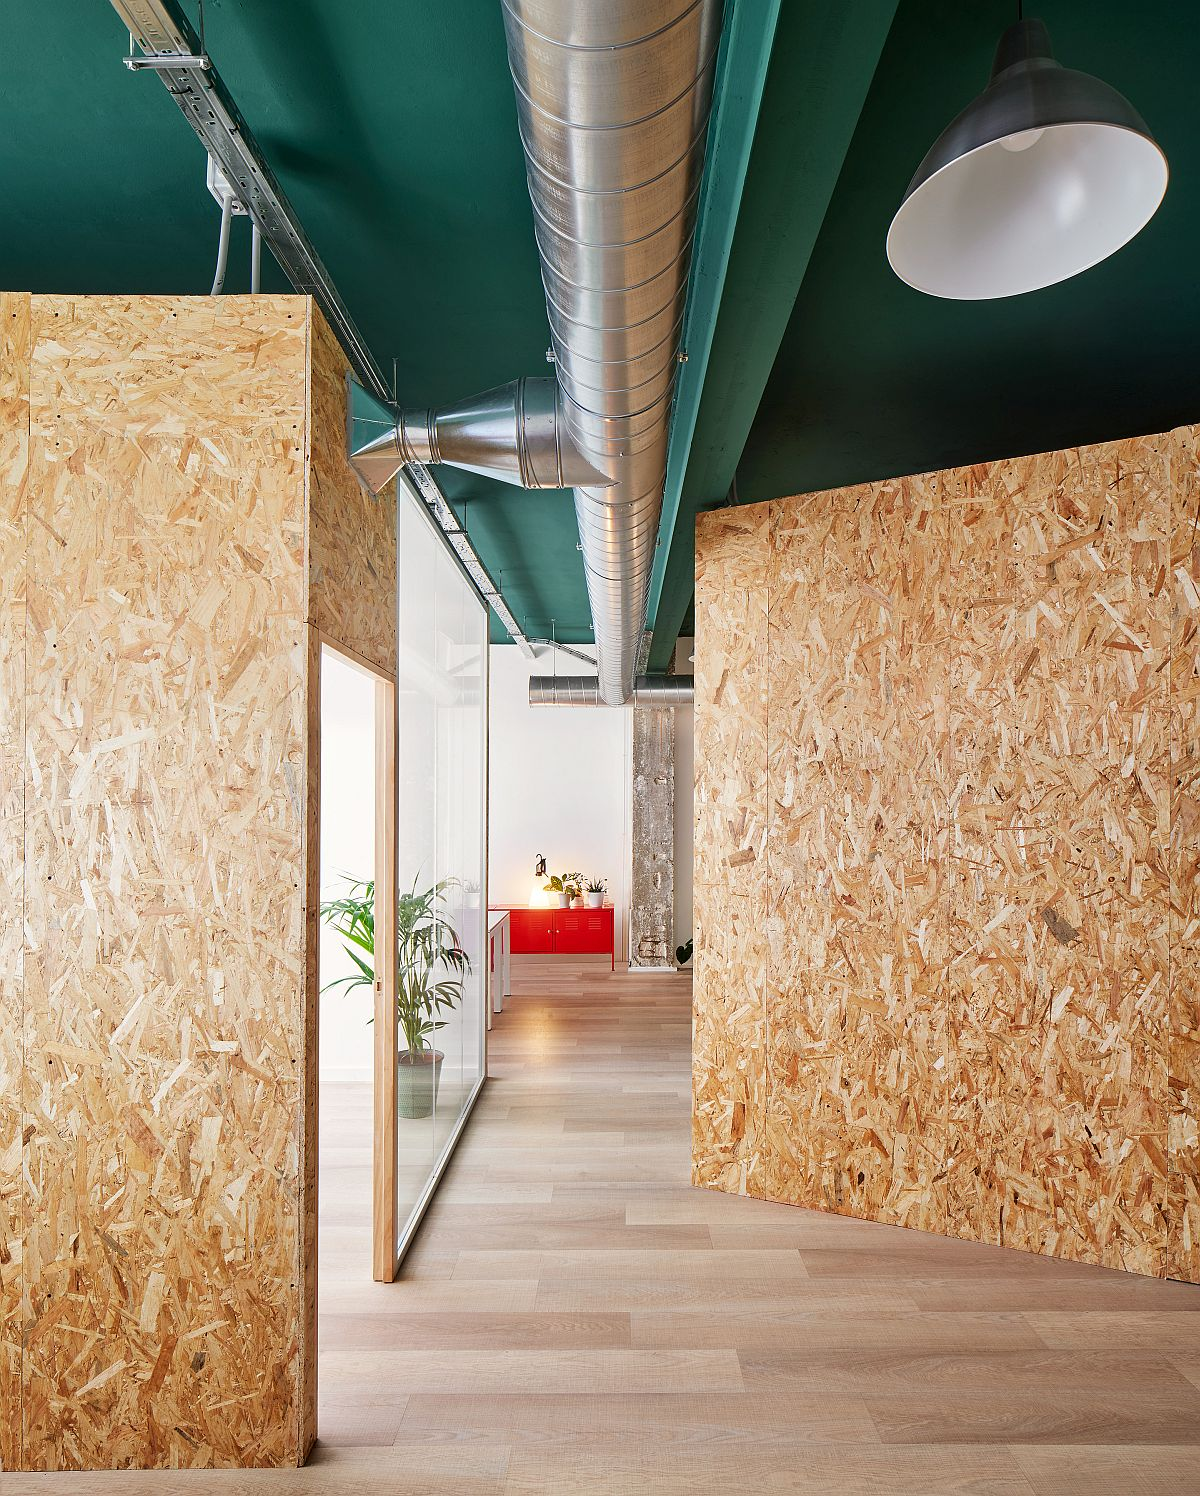 Original-industrial-elements-of-the-interiorhave-been-preserved-and-enhanced-inside-the-office-space-96284